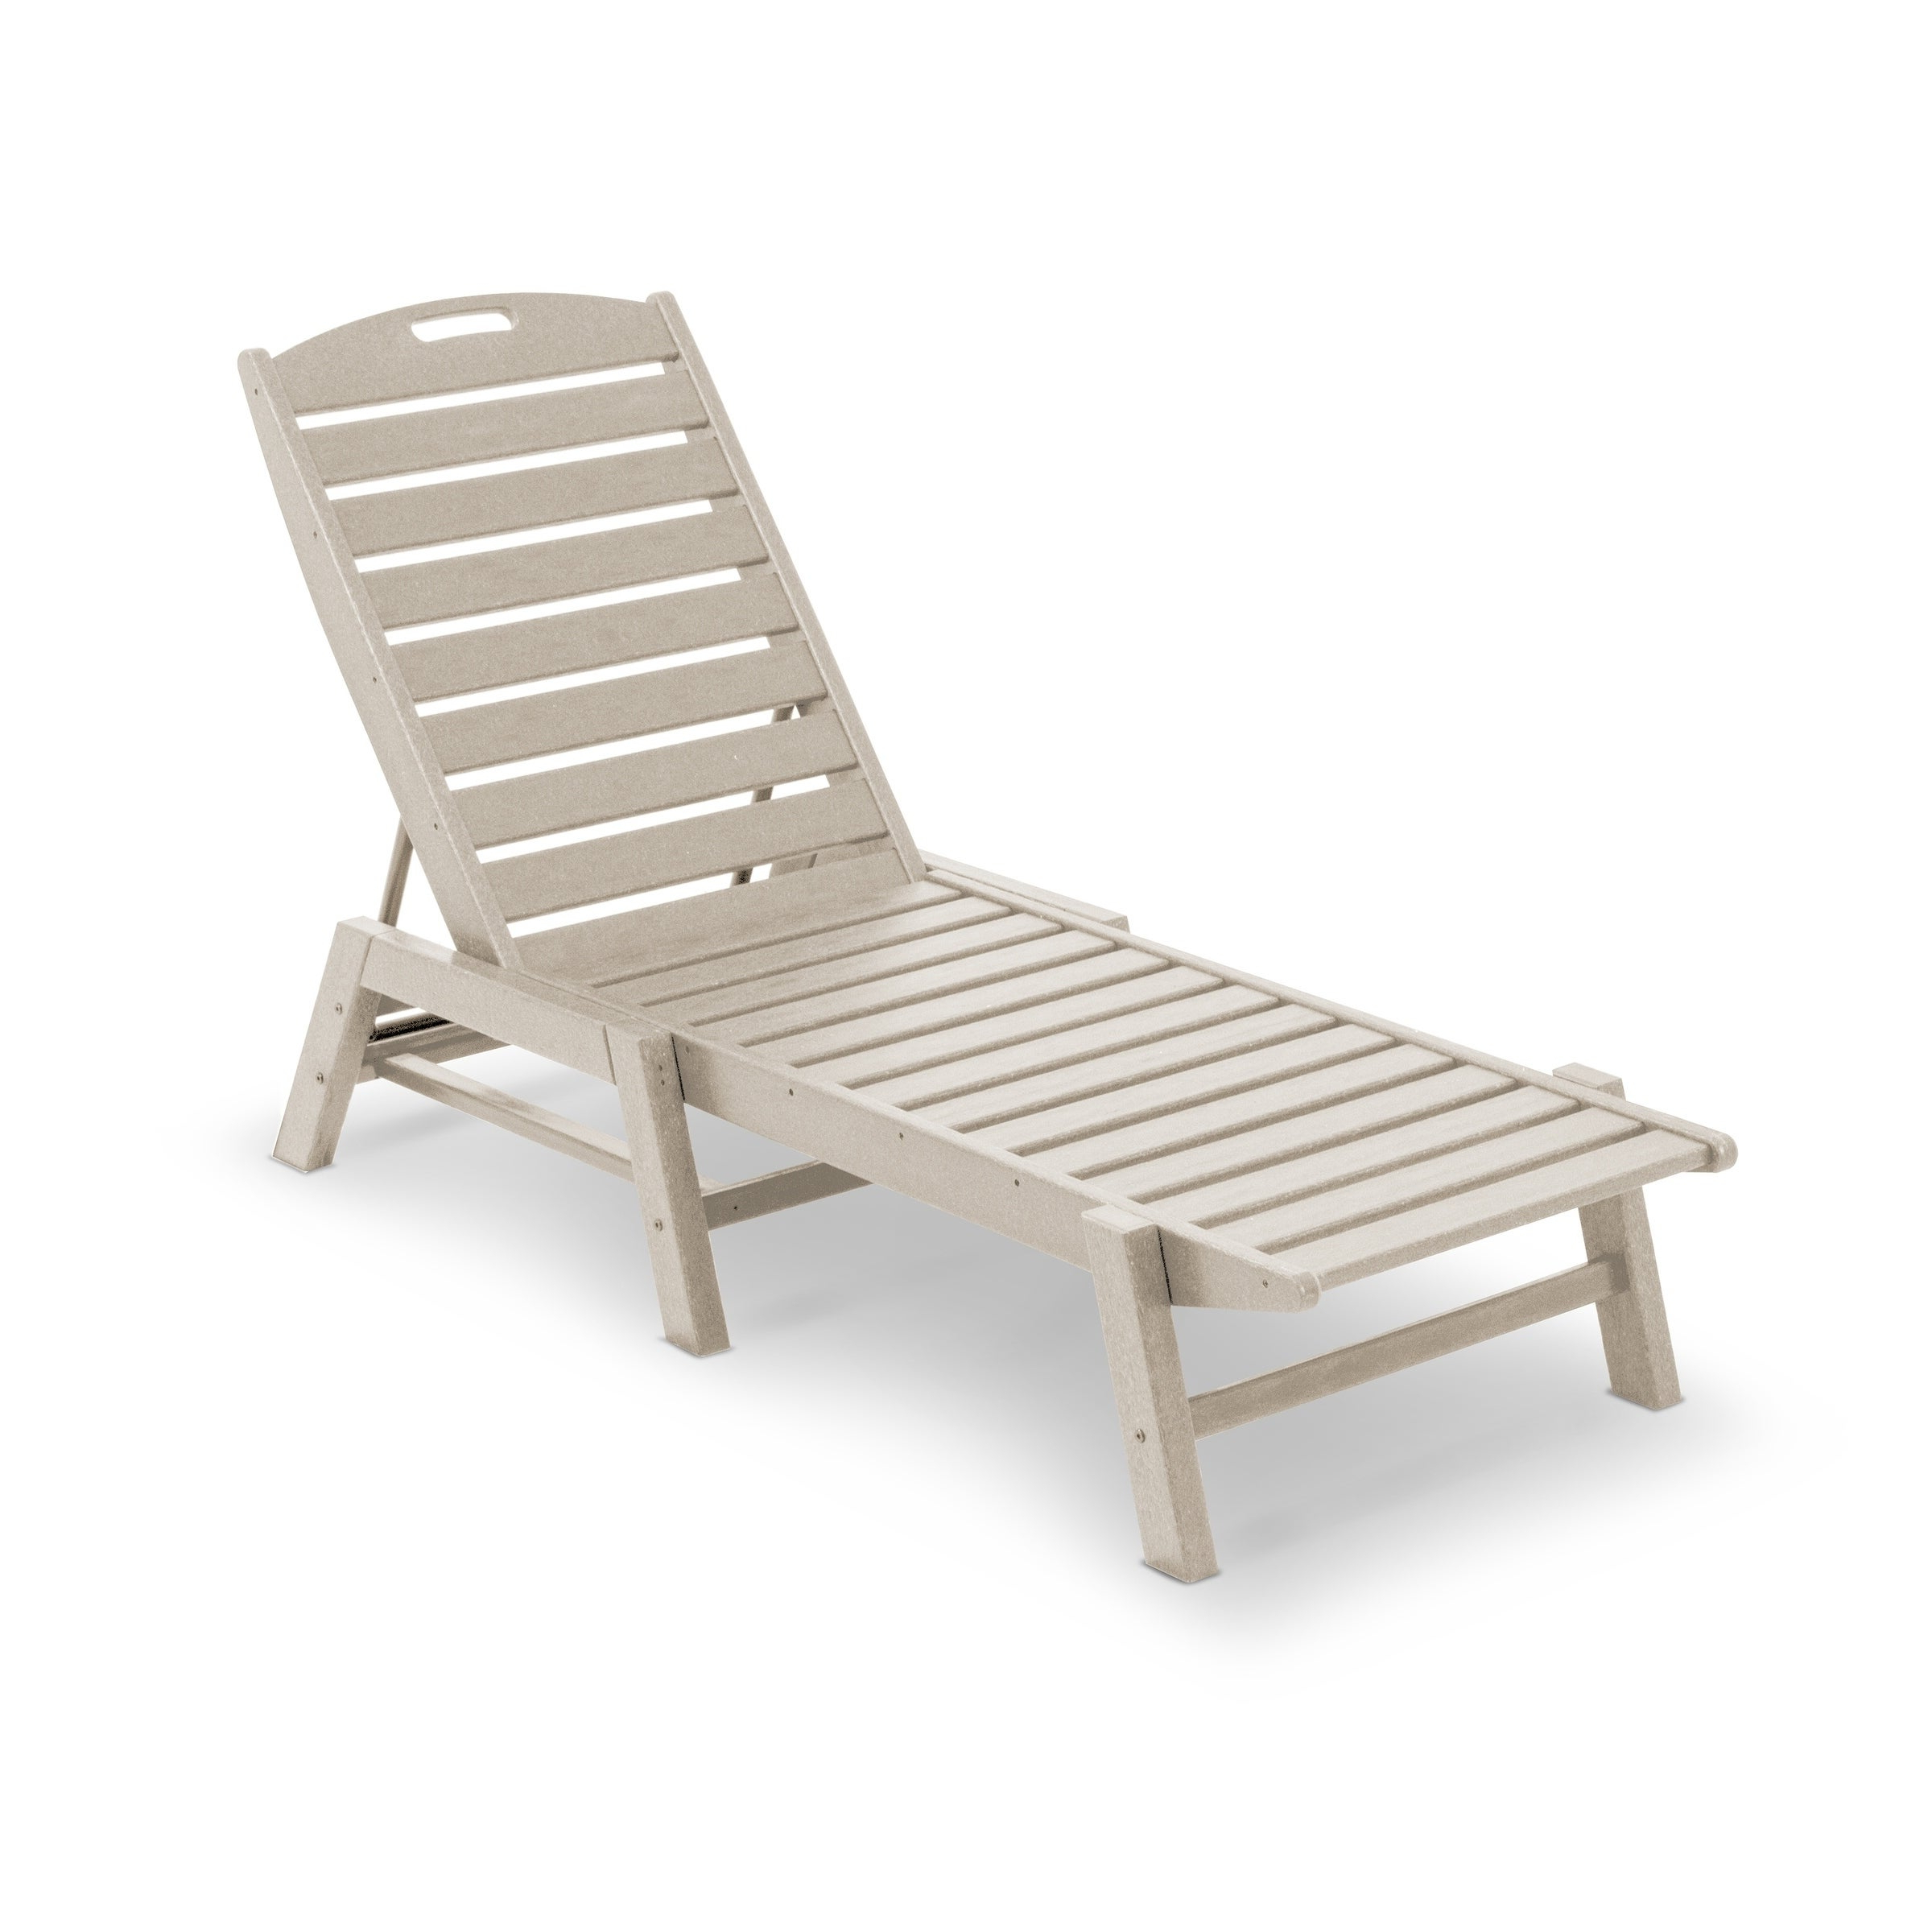 Best And Newest Polywood® Nautical Outdoor Chaise Lounge, Stackable Throughout Nautical Outdoor Chaise Lounges With Arms (View 6 of 25)